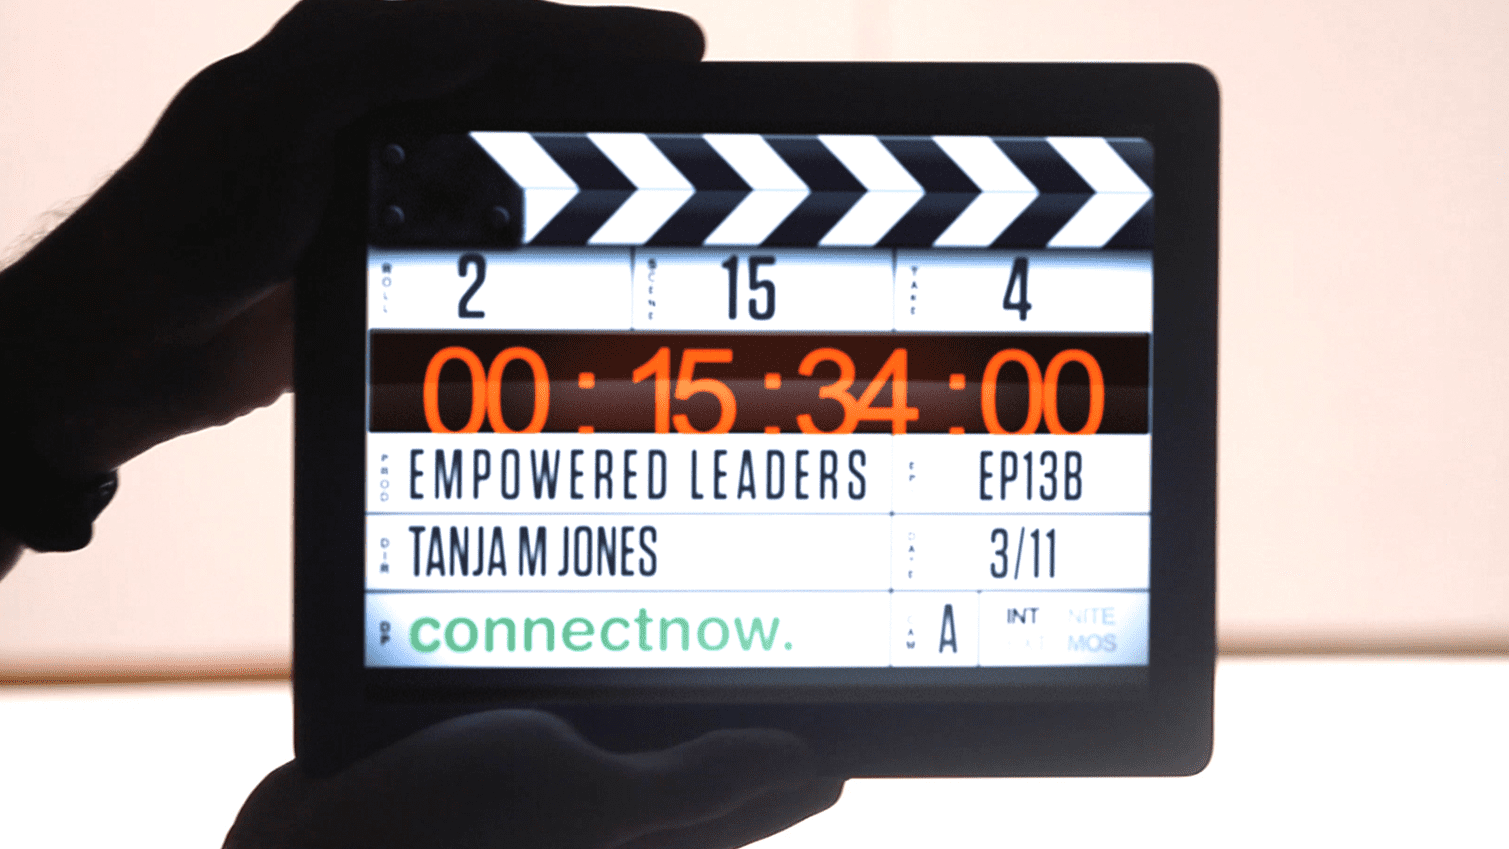 Photo of Transform PM Ep 13B: Empowered Leaders, Tanja M Jones